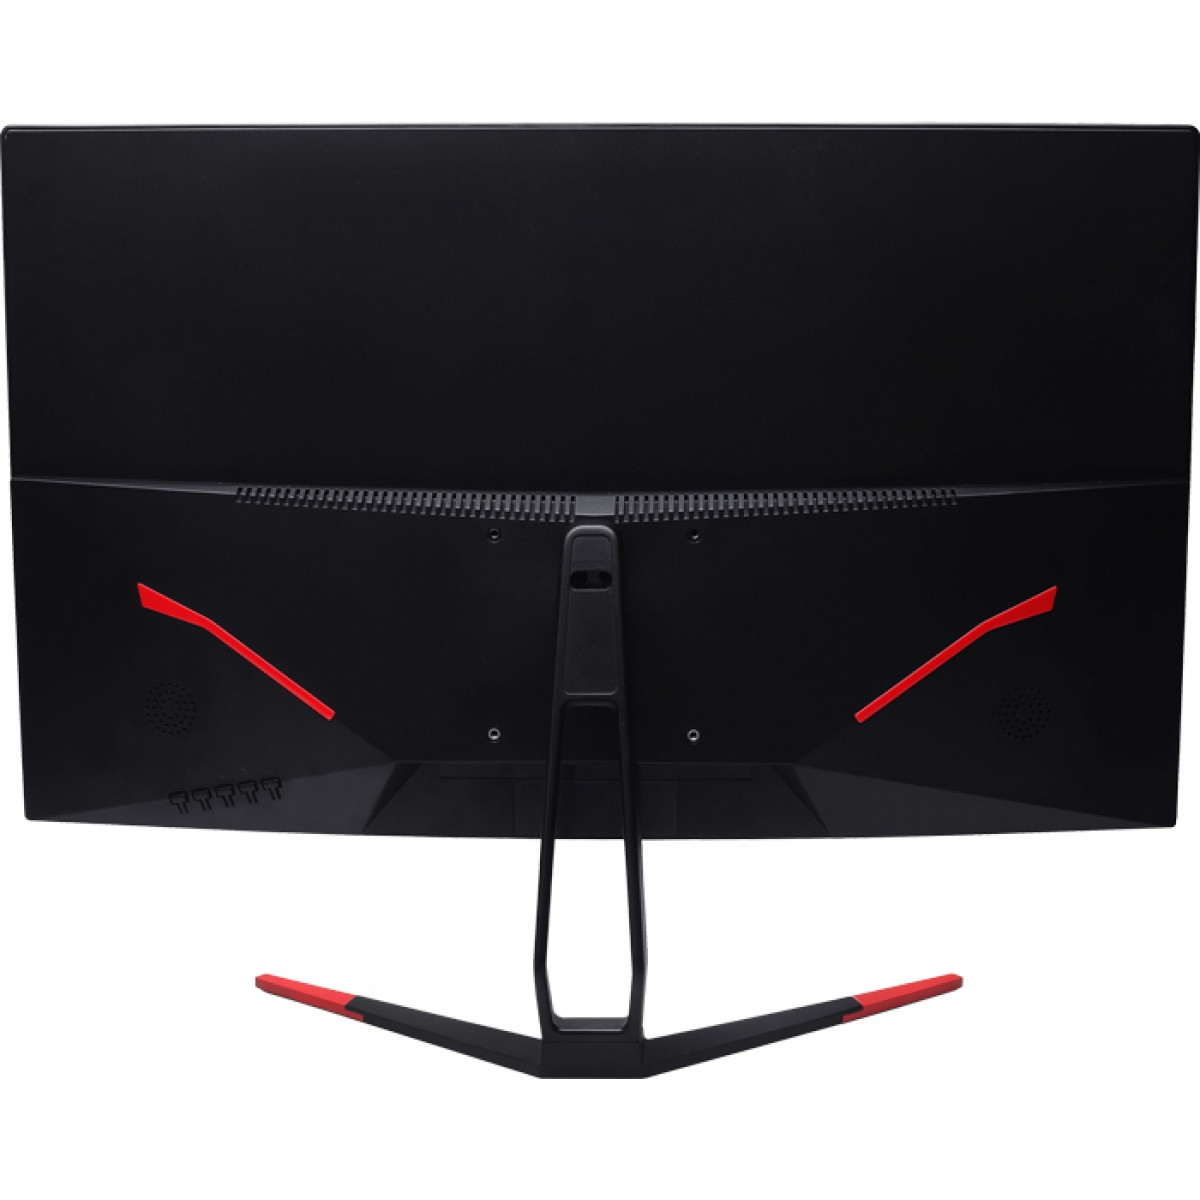 Monitor Gamer Curvo Bluecase 27 Pol, Full HD, 144Hz, 1ms(GTG), BM275GC